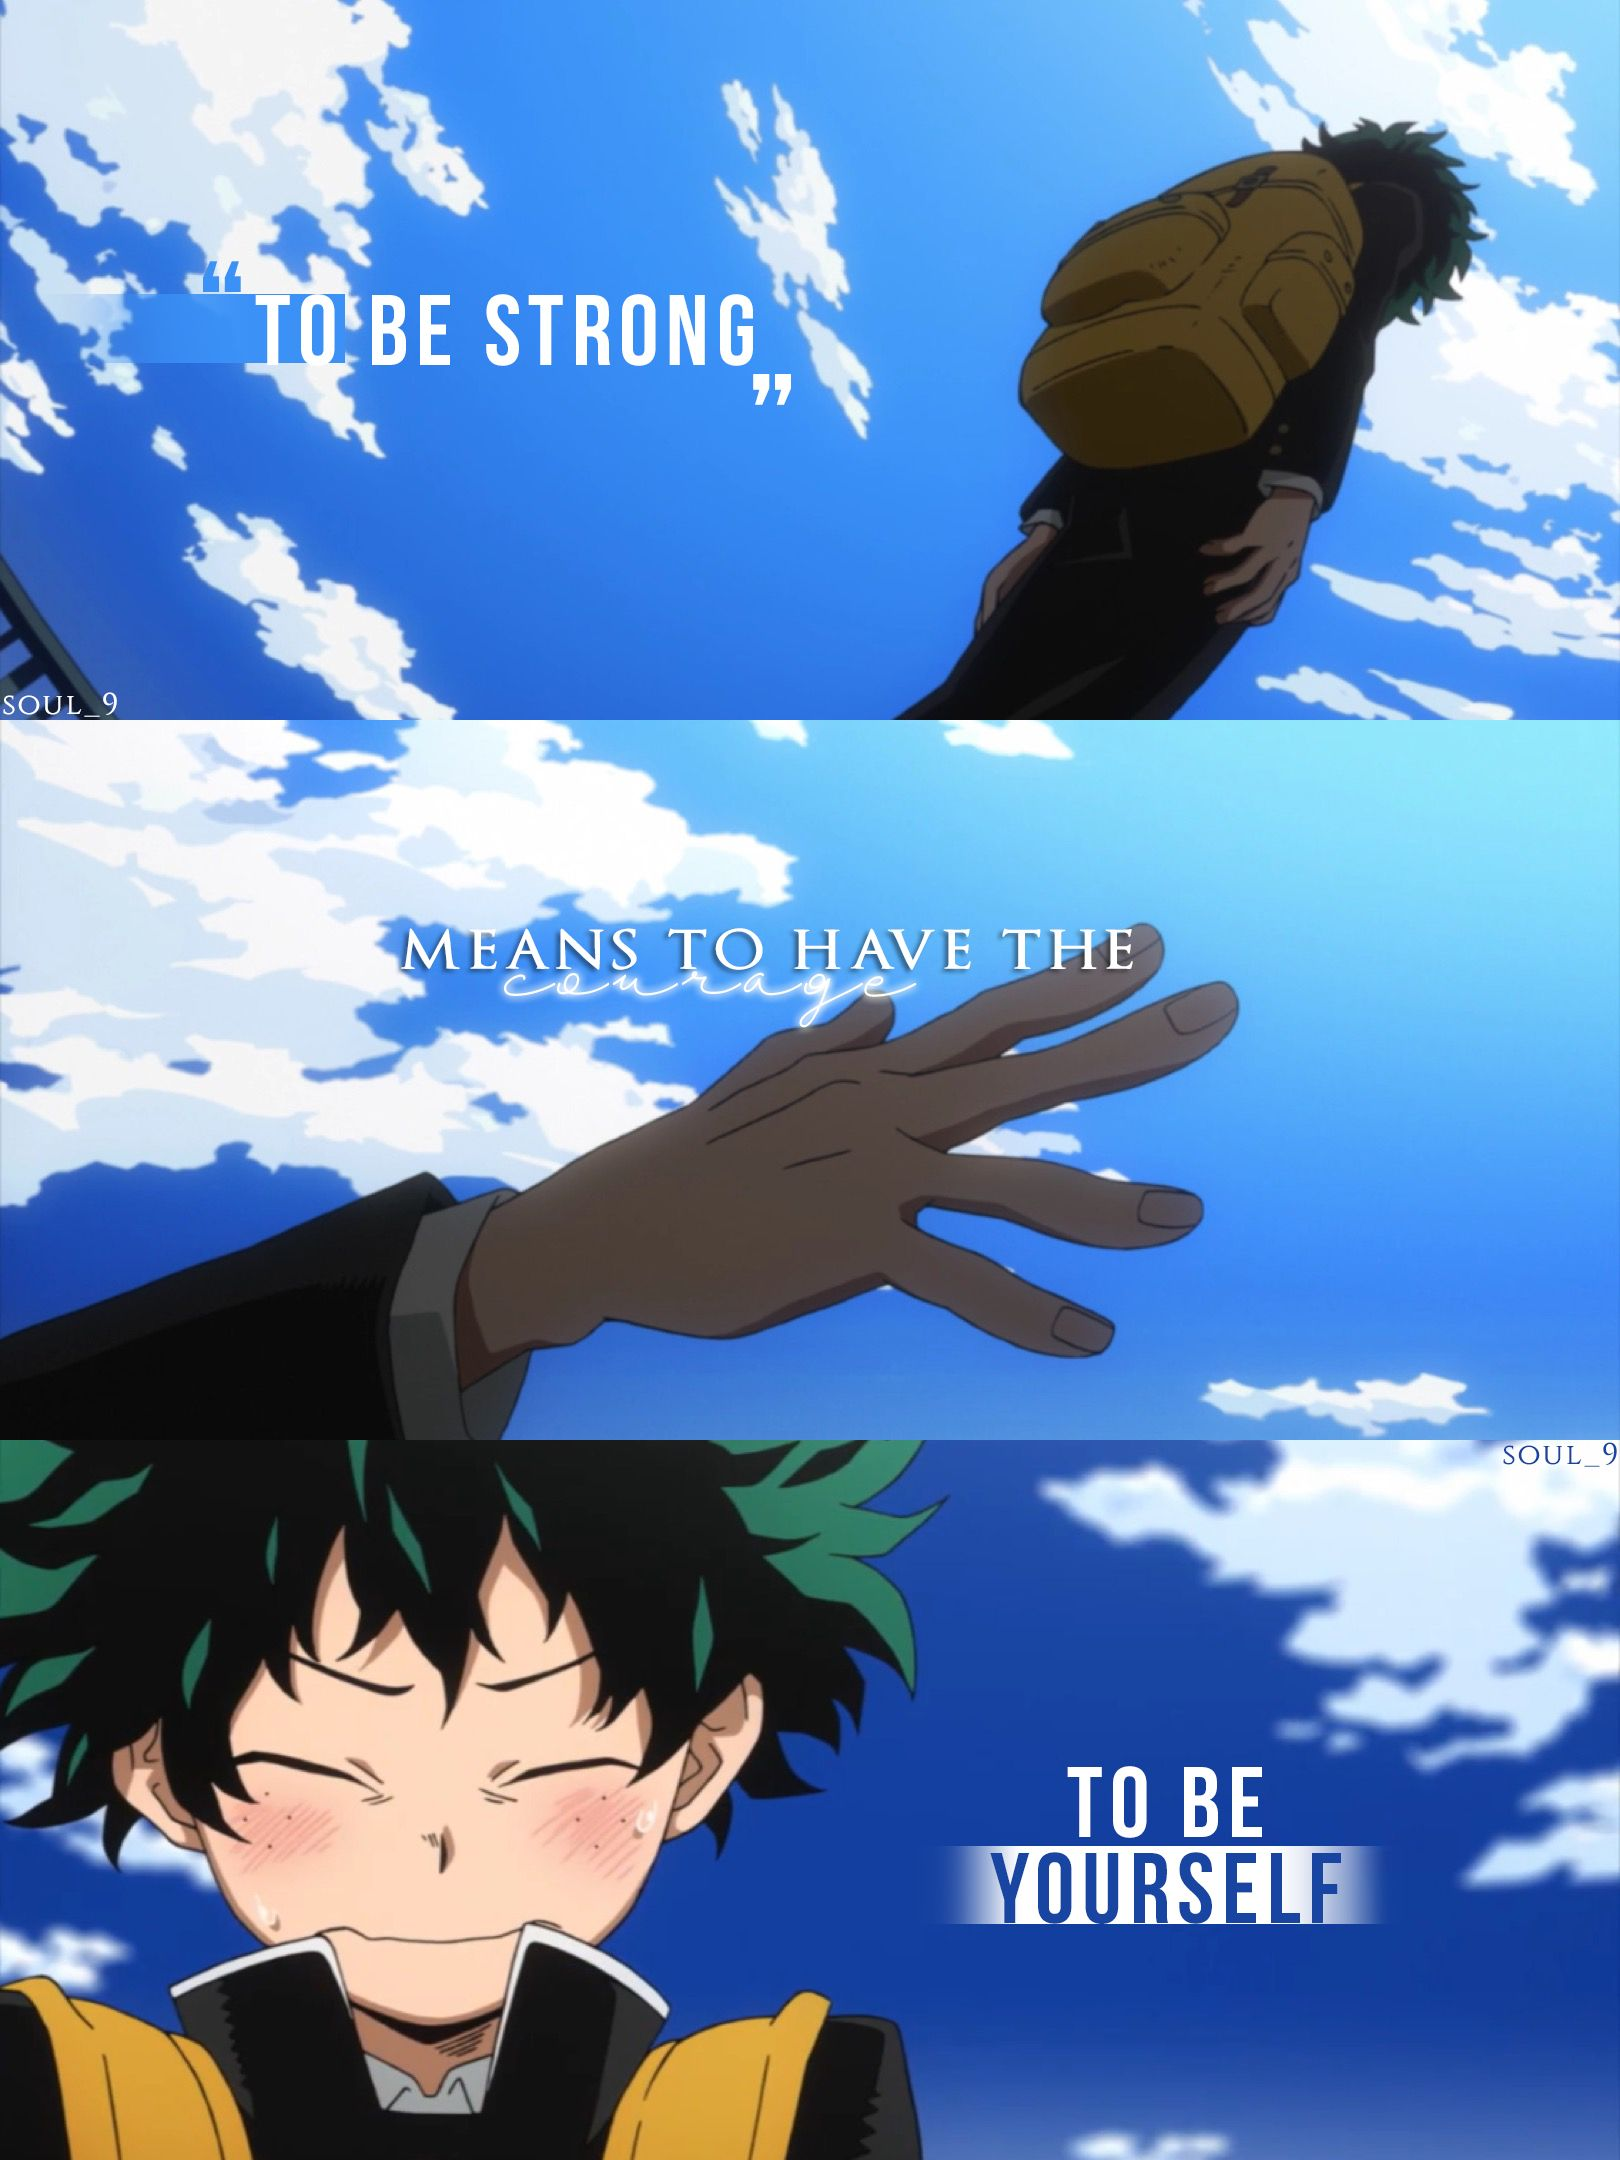 Best Anime Quotes About Never Giving Up